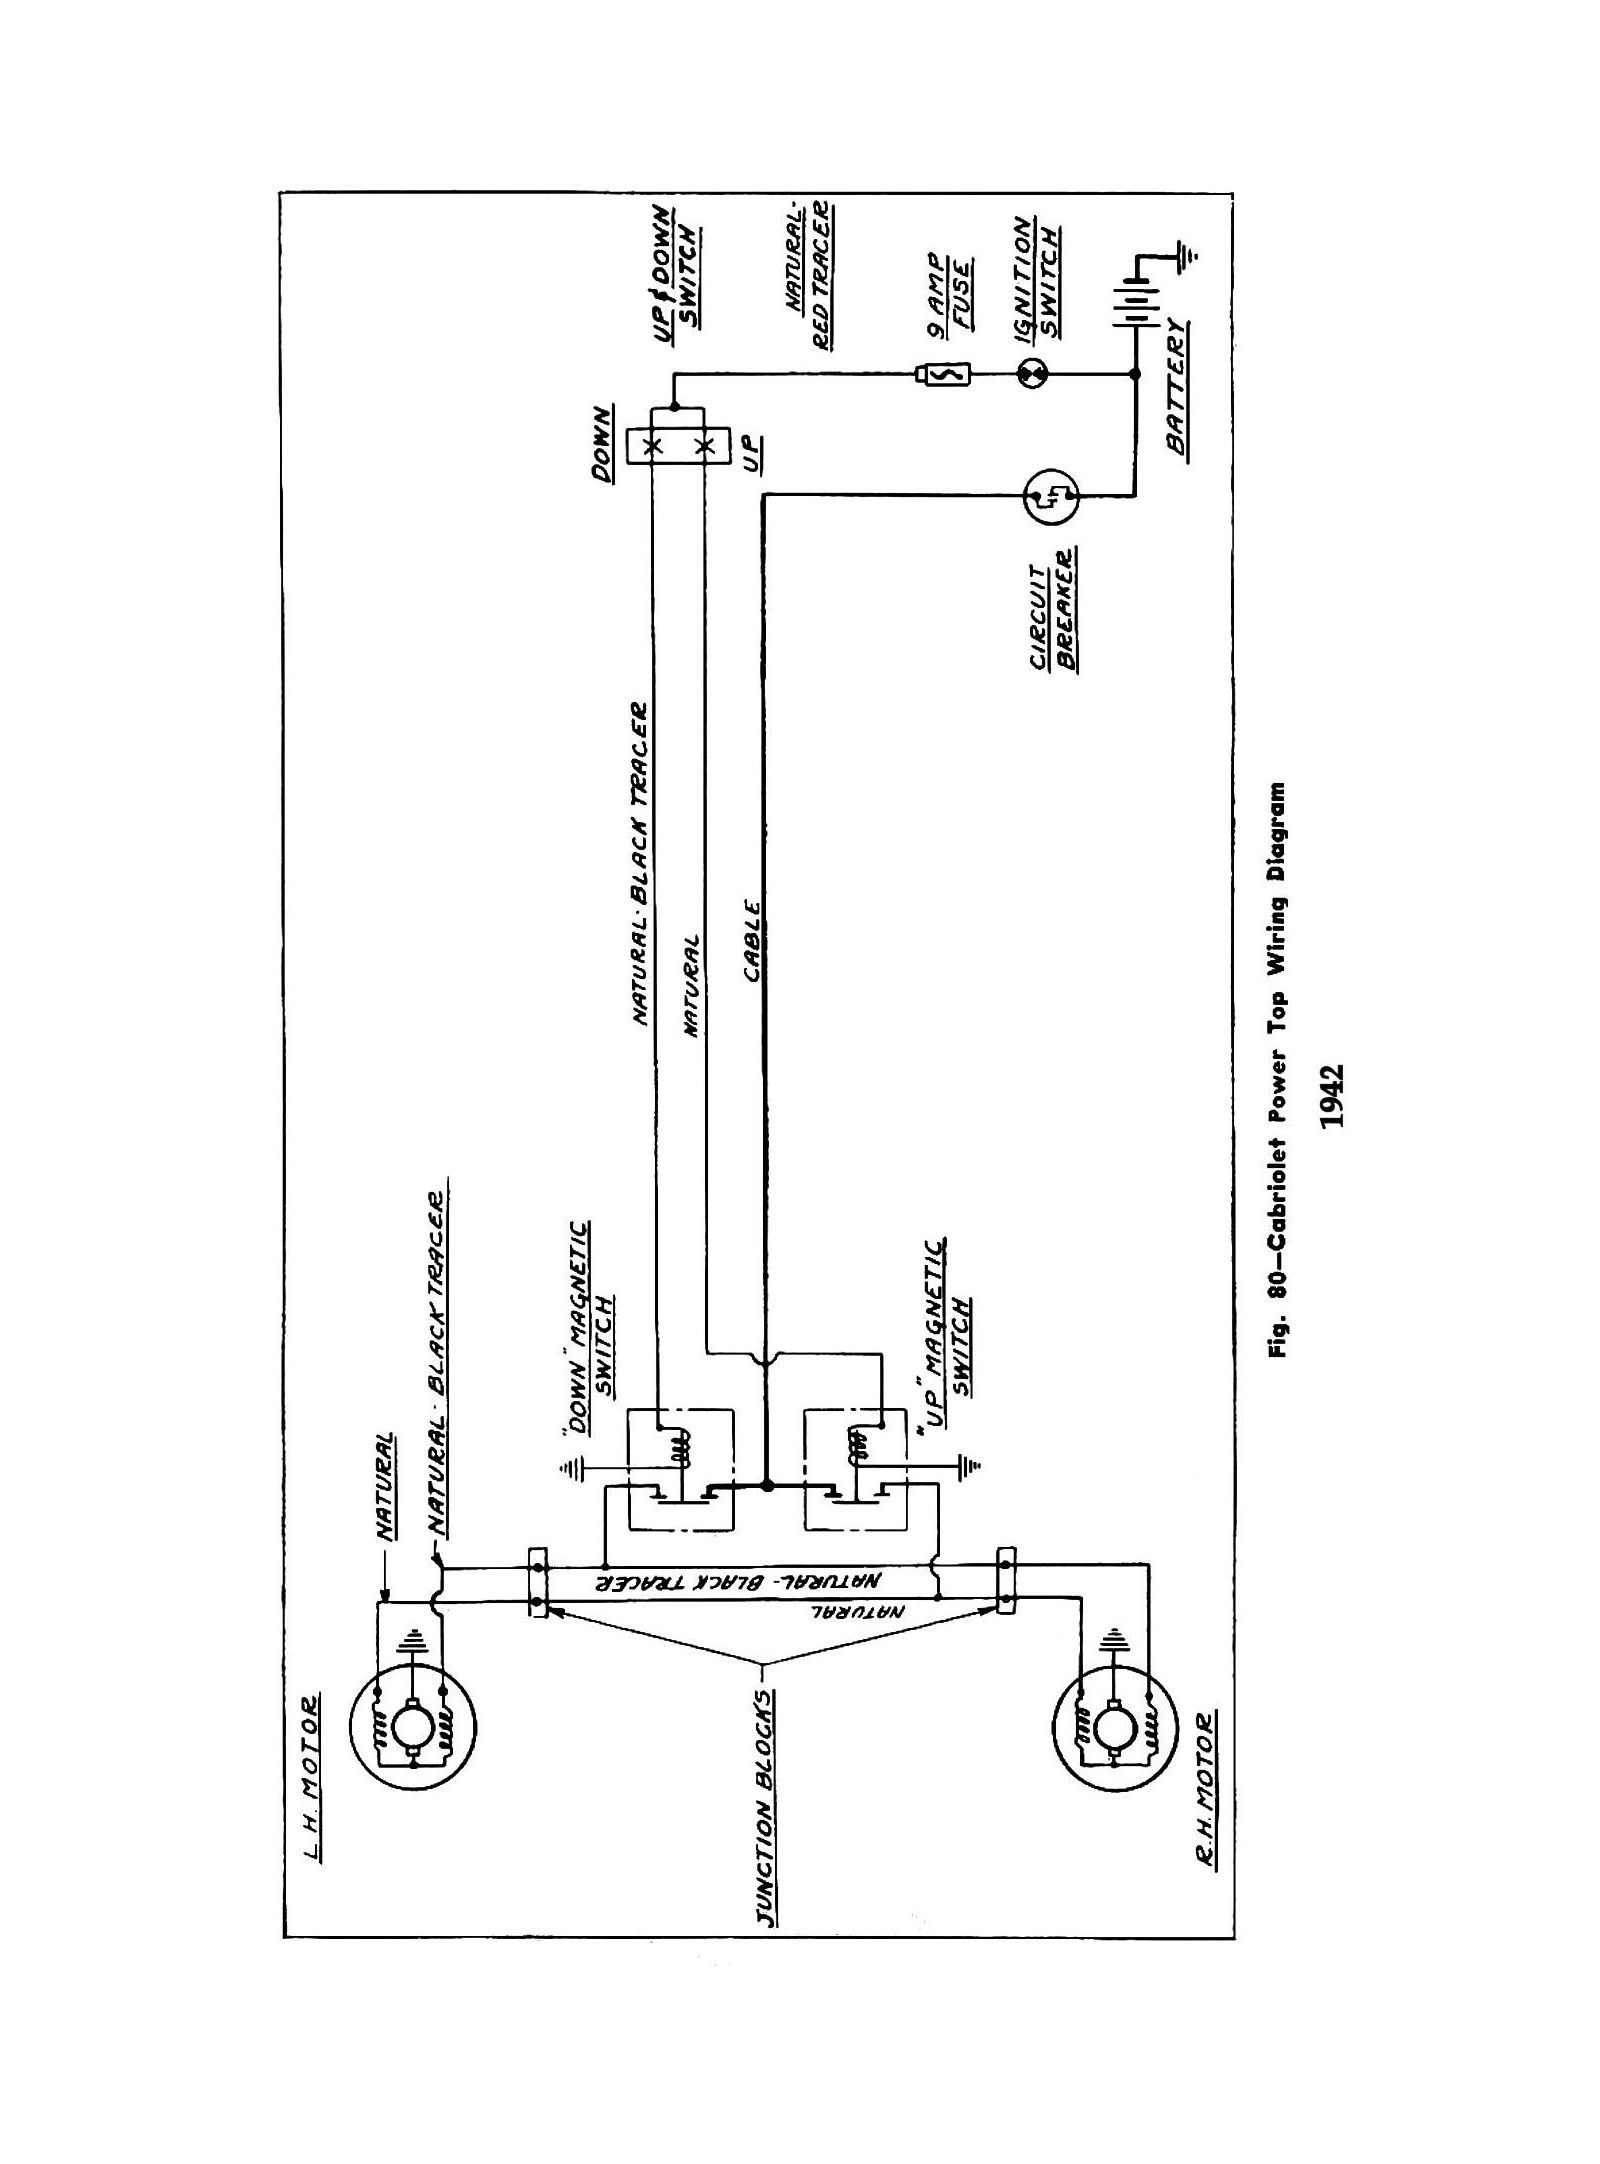 Chevy Wiring Diagrams Truck Diagram 1942 Cabriolet Power Top